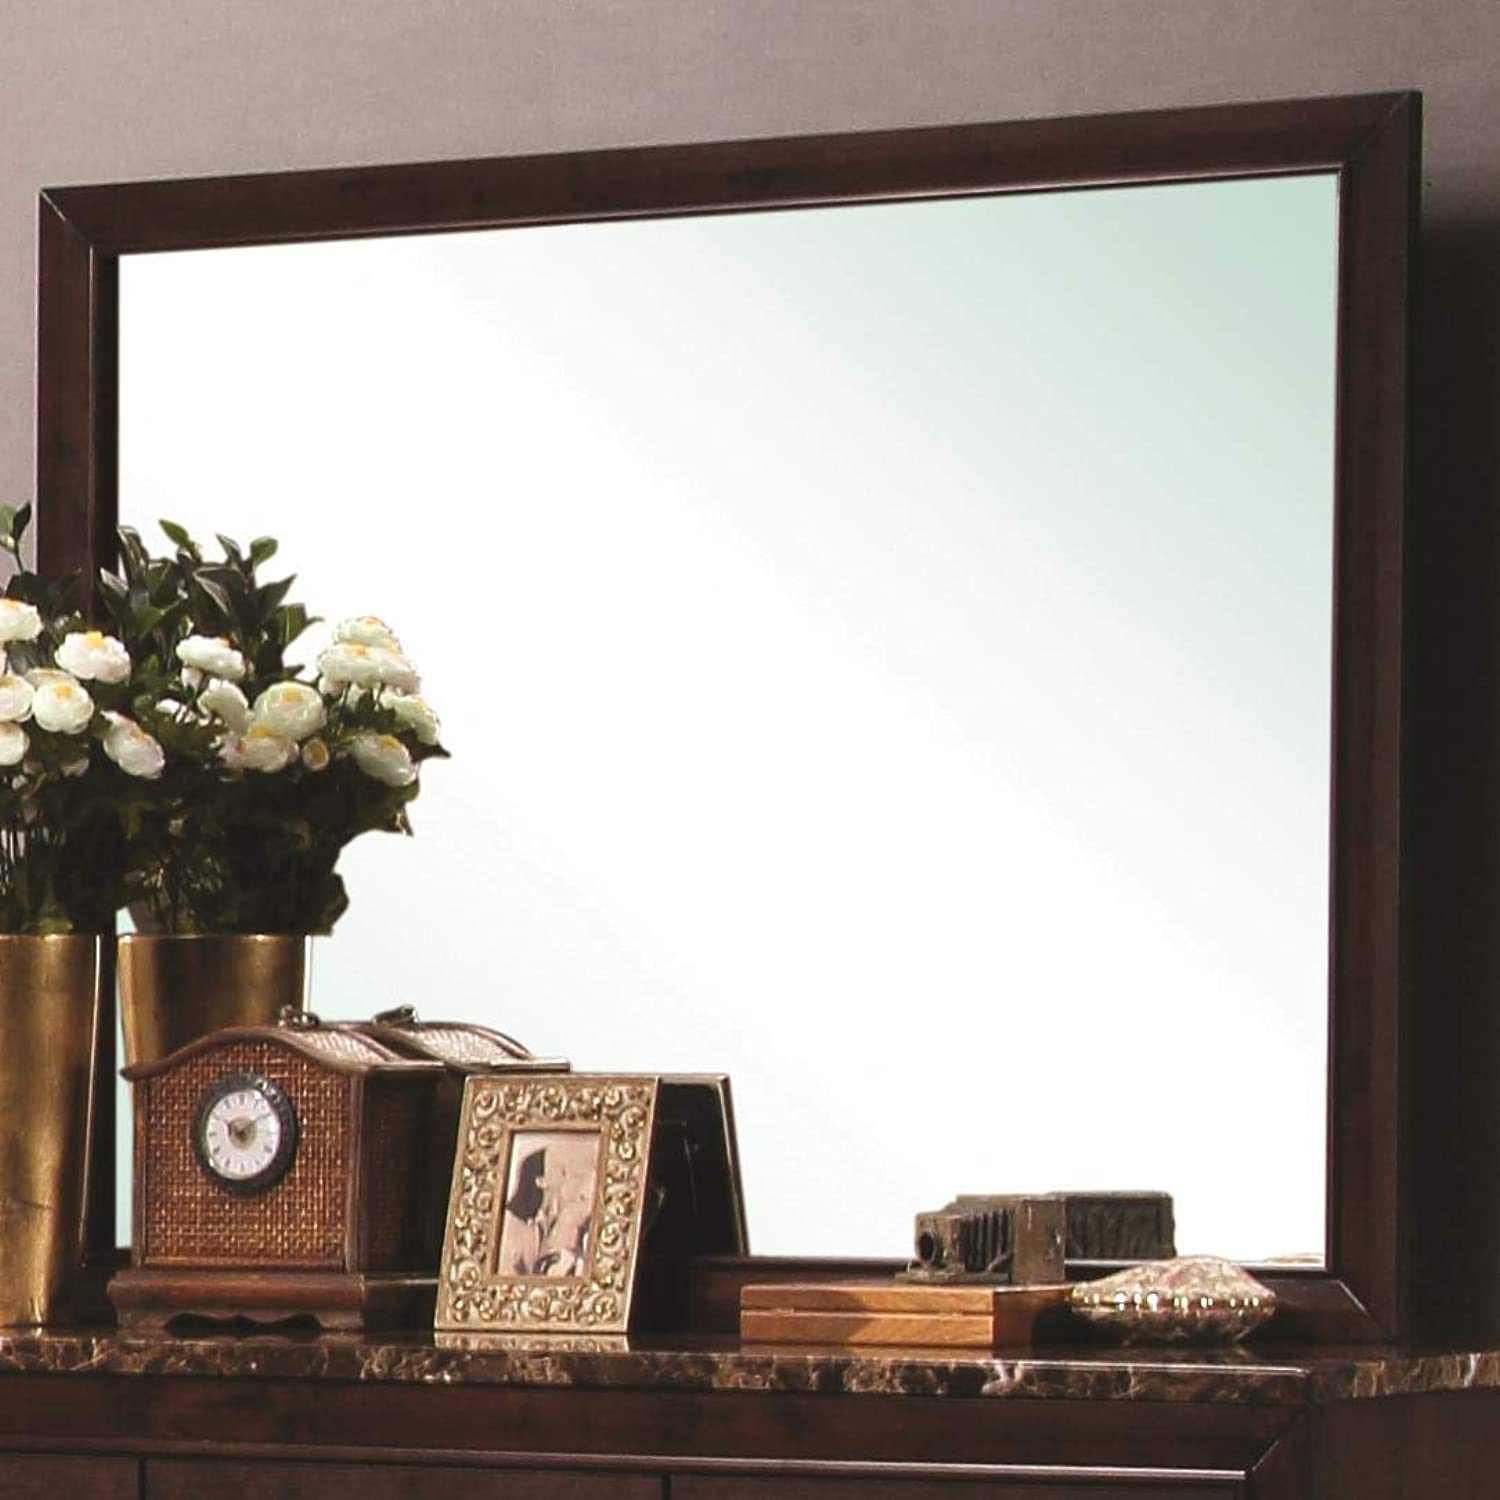 Benzara BM168131 Mirror with Wooden Frame, Brown